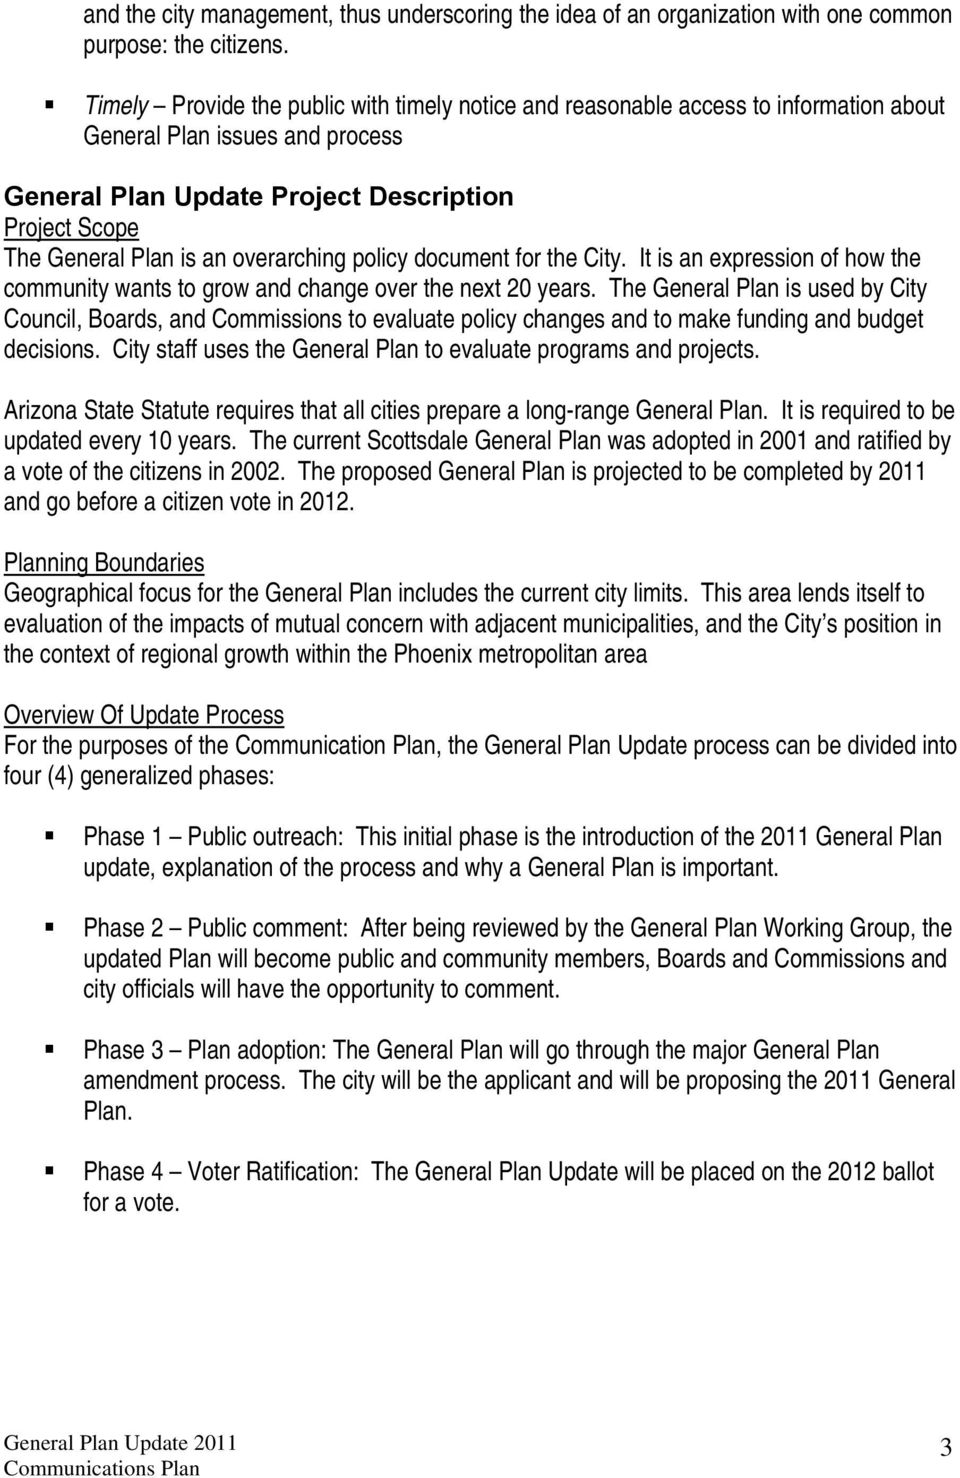 overarching policy document for the City. It is an expression of how the community wants to grow and change over the next 20 years.